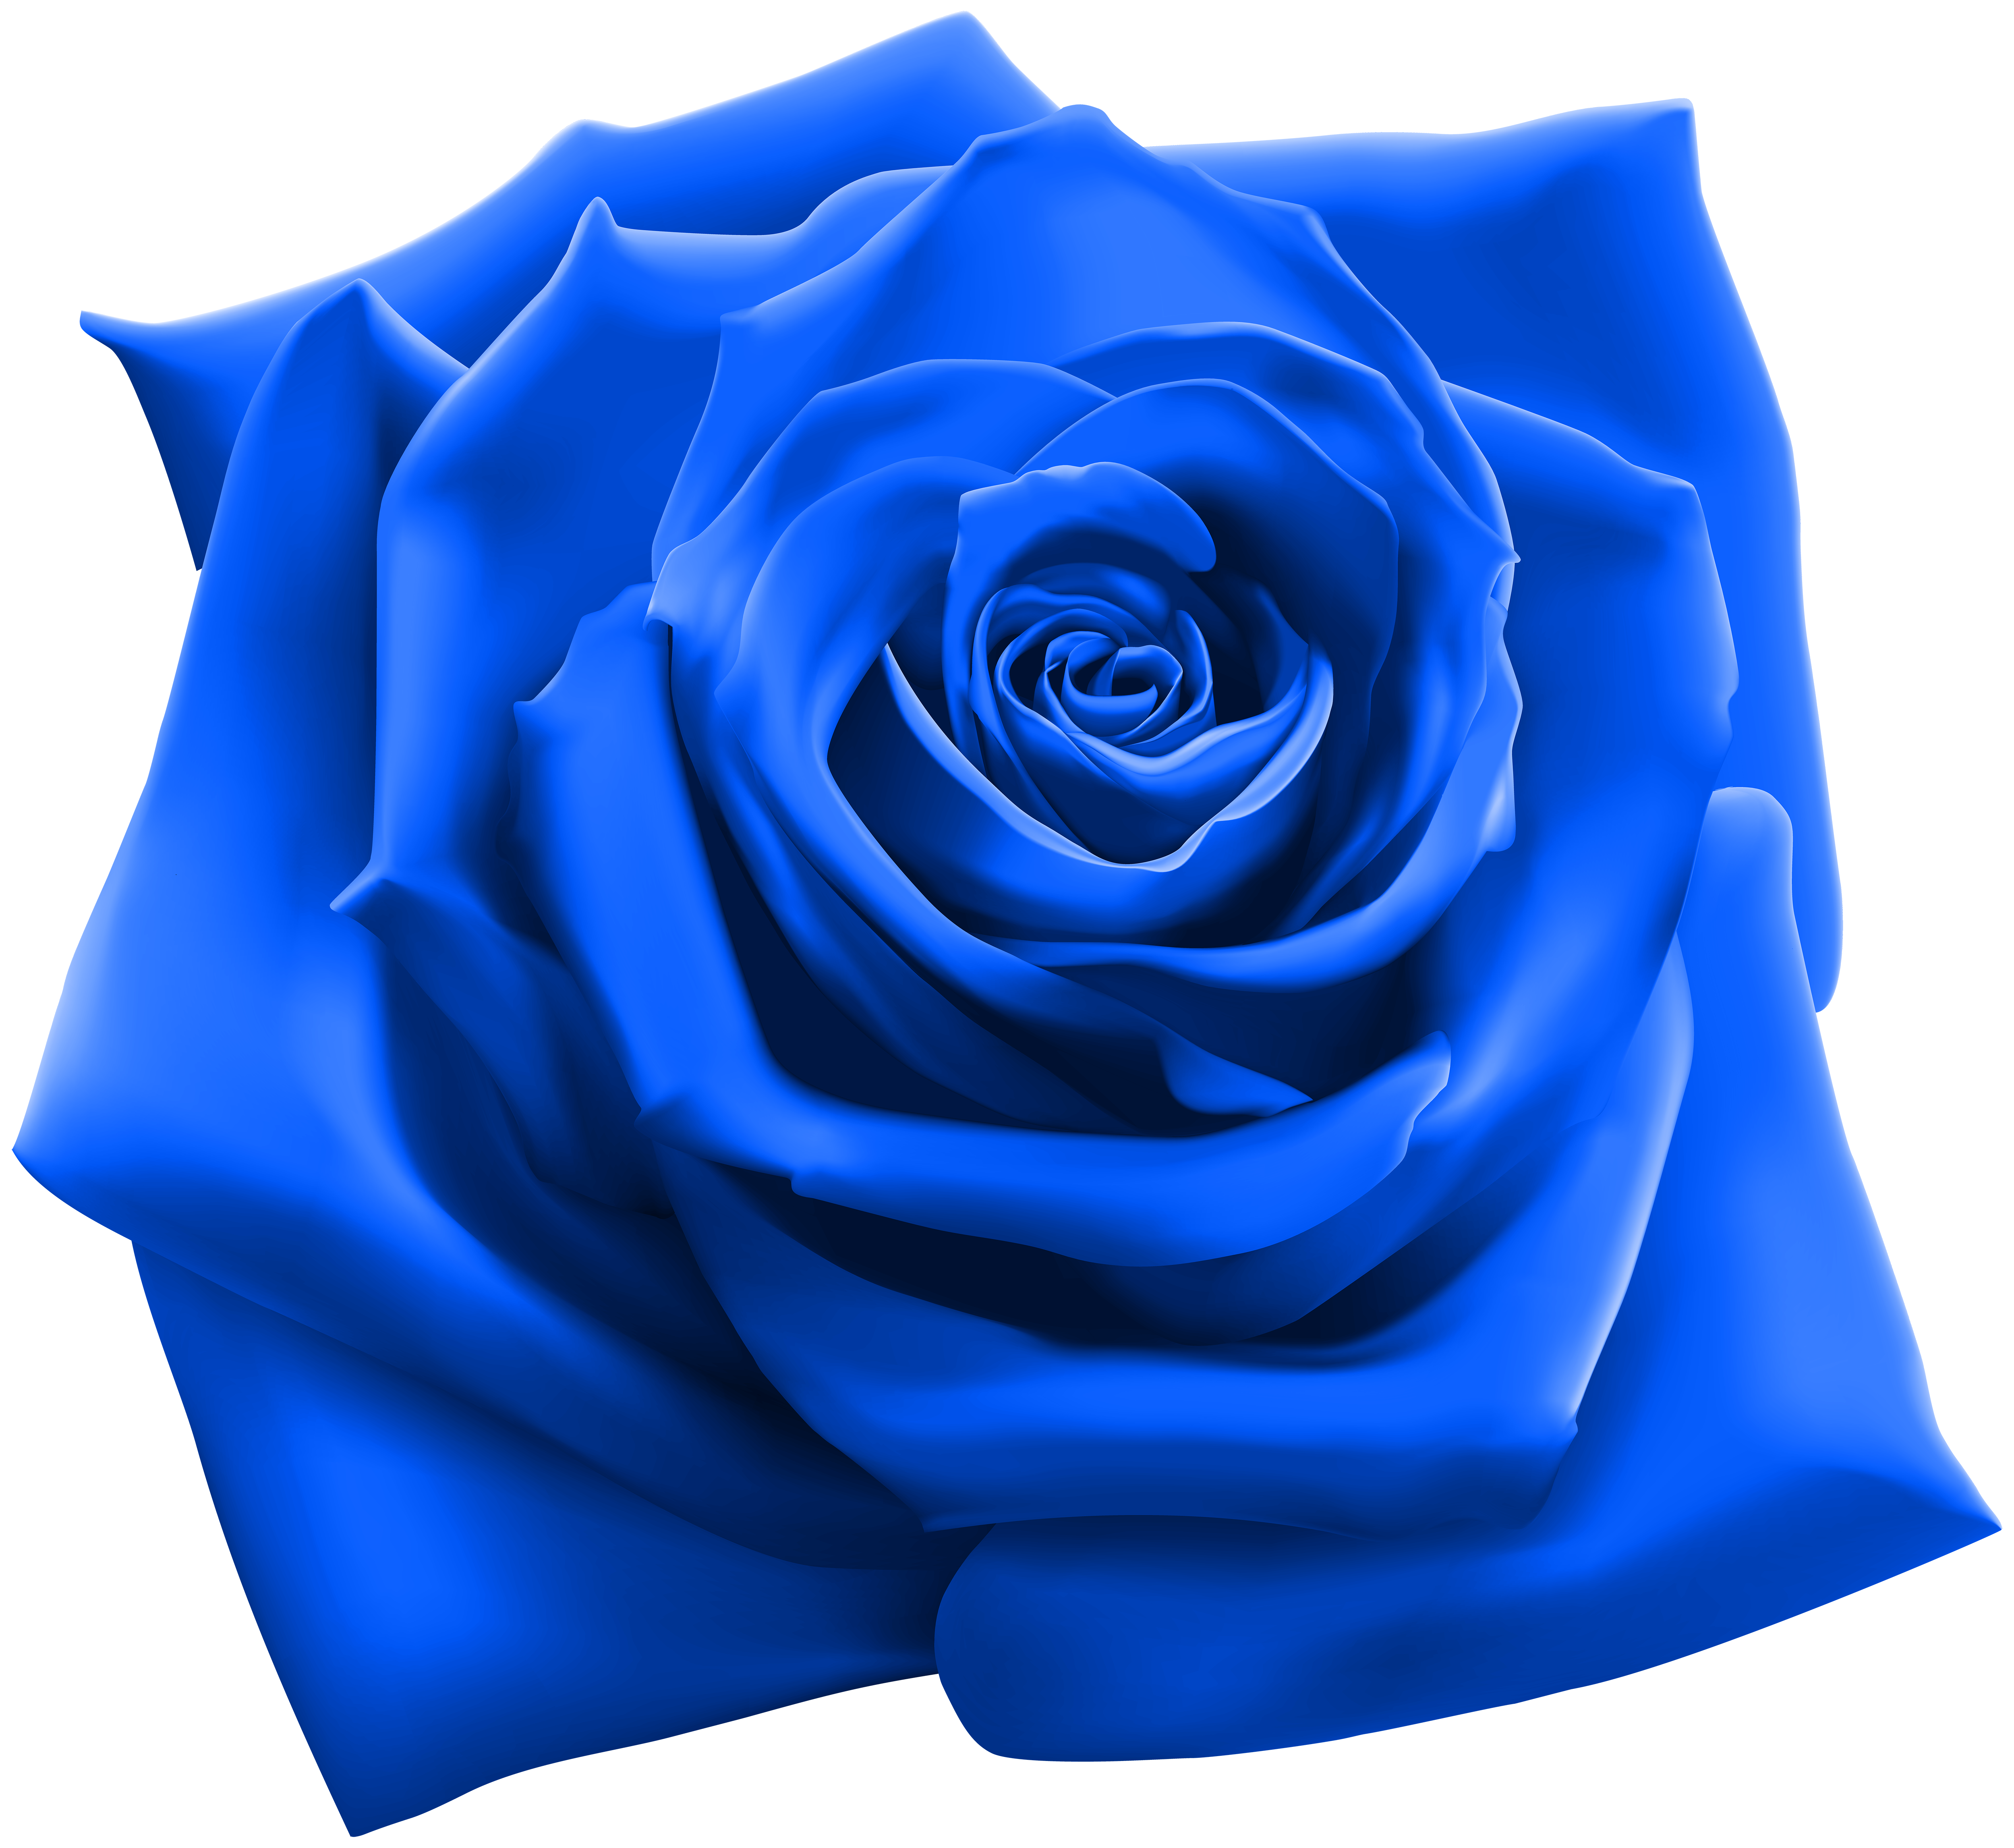 Blue rose png. Clipart image gallery yopriceville